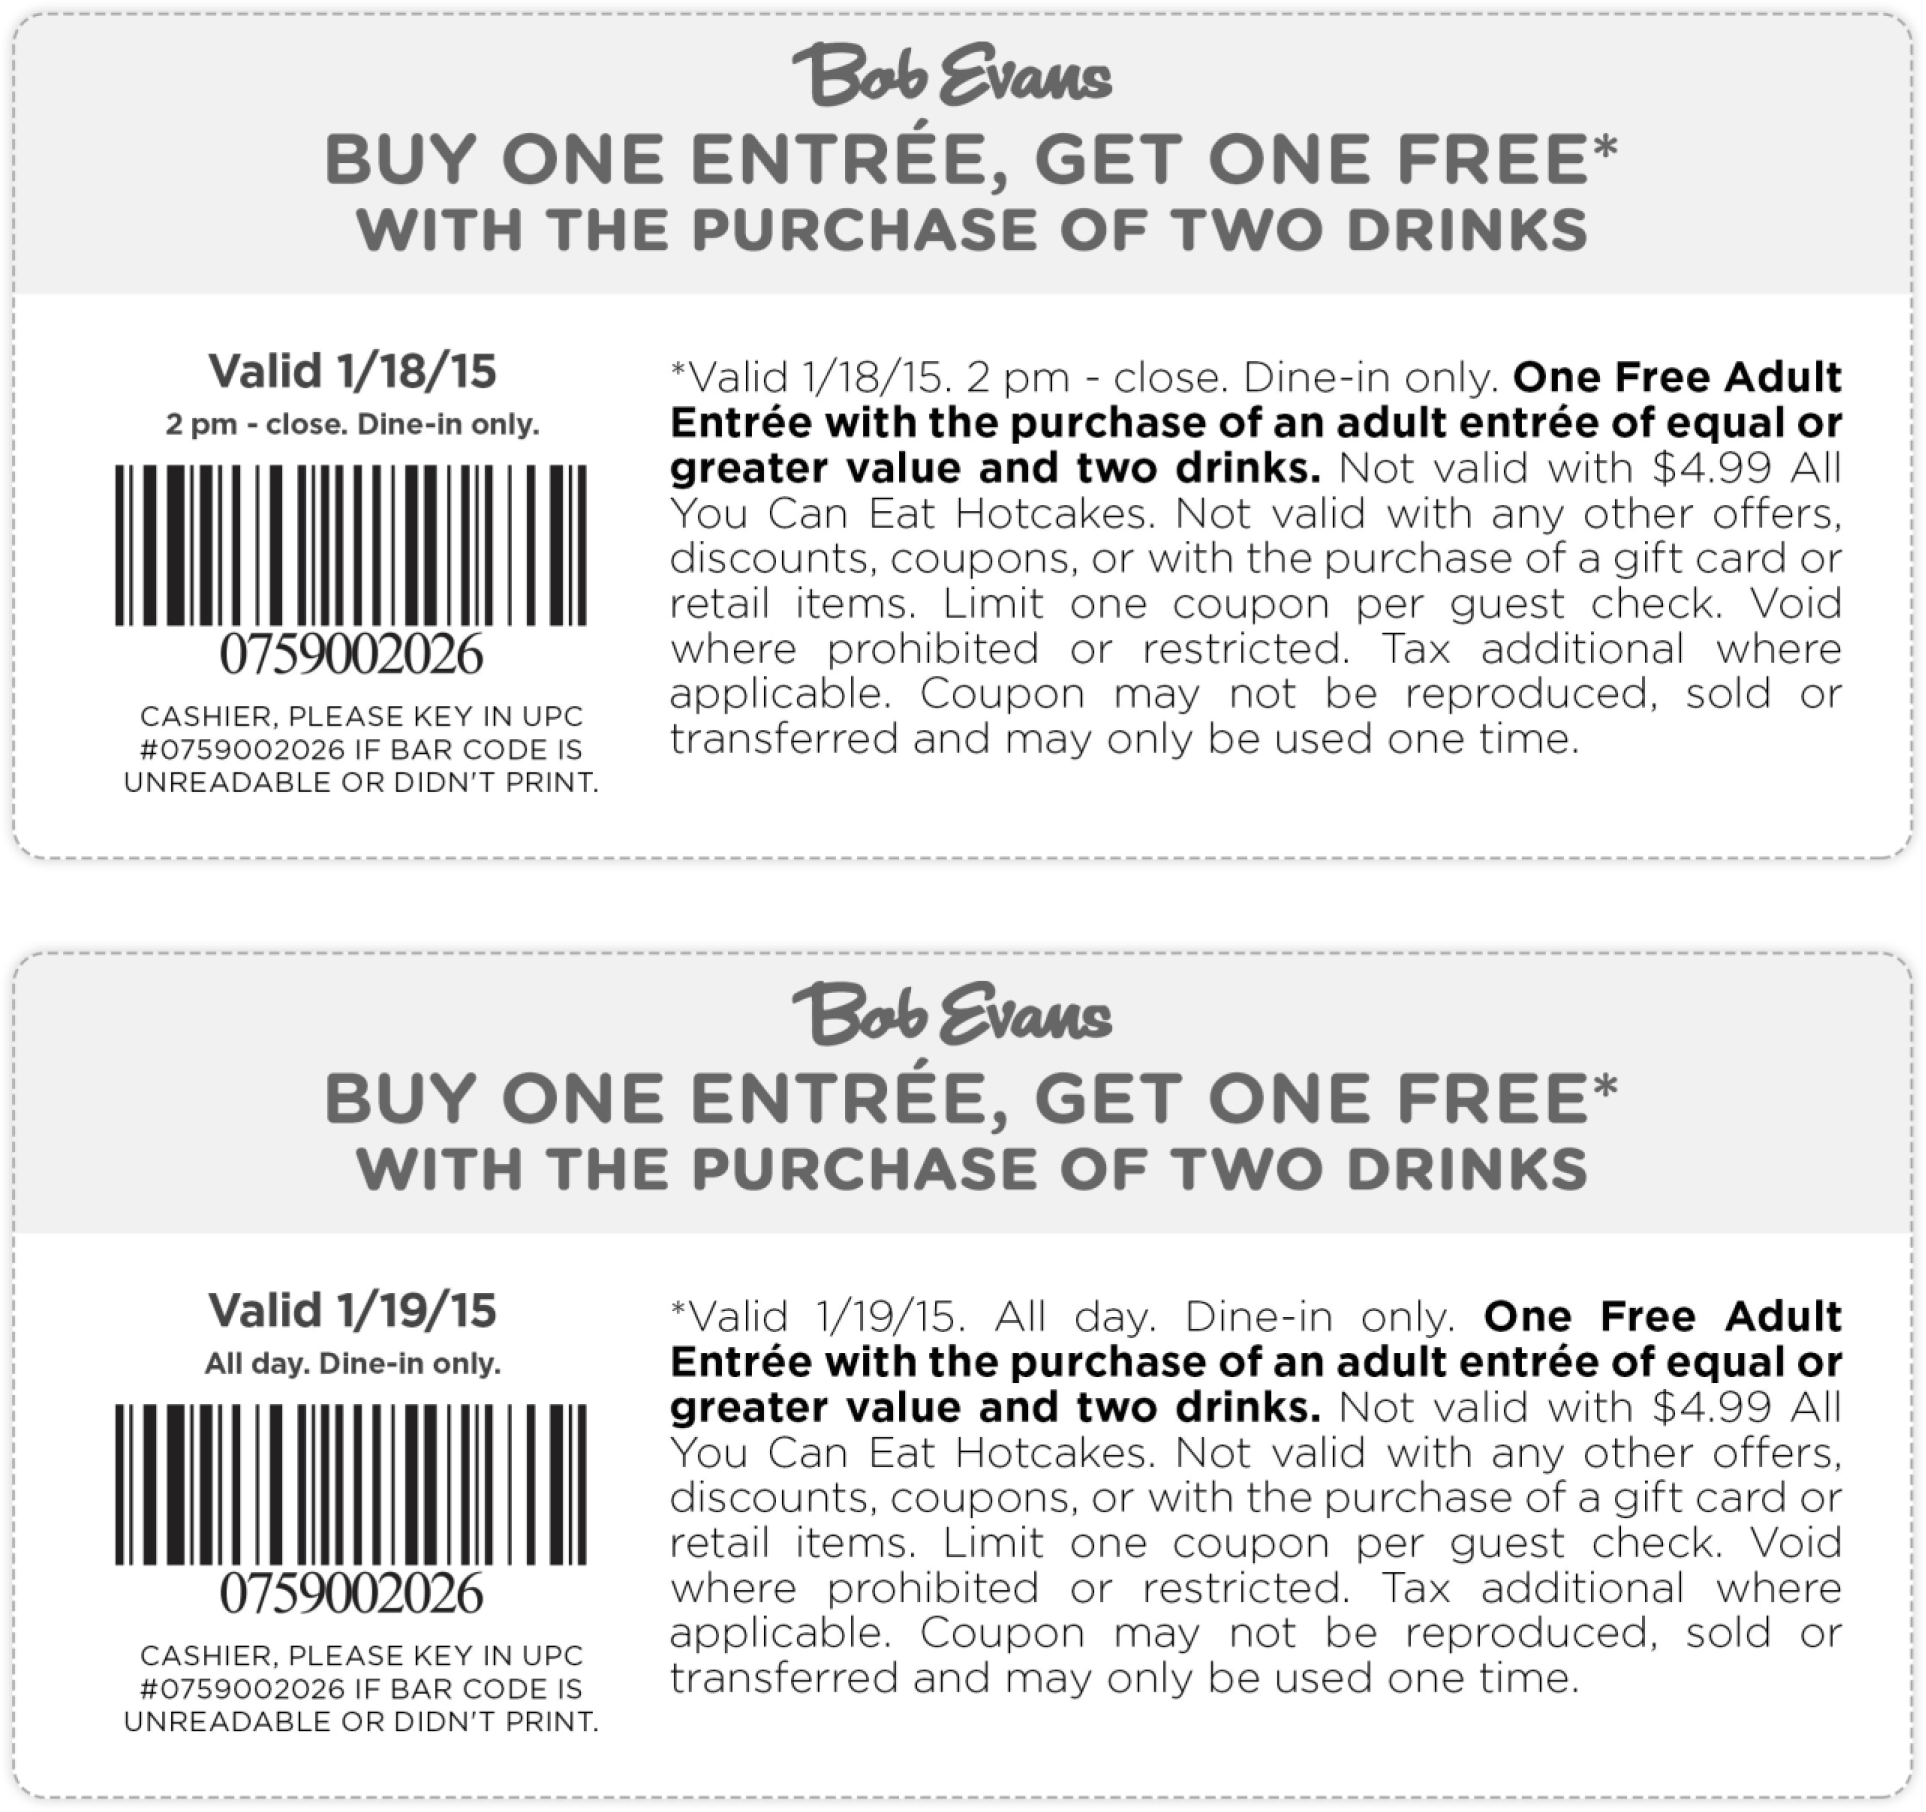 Bob Evans Coupon April 2017 Second entree free at Bob Evans